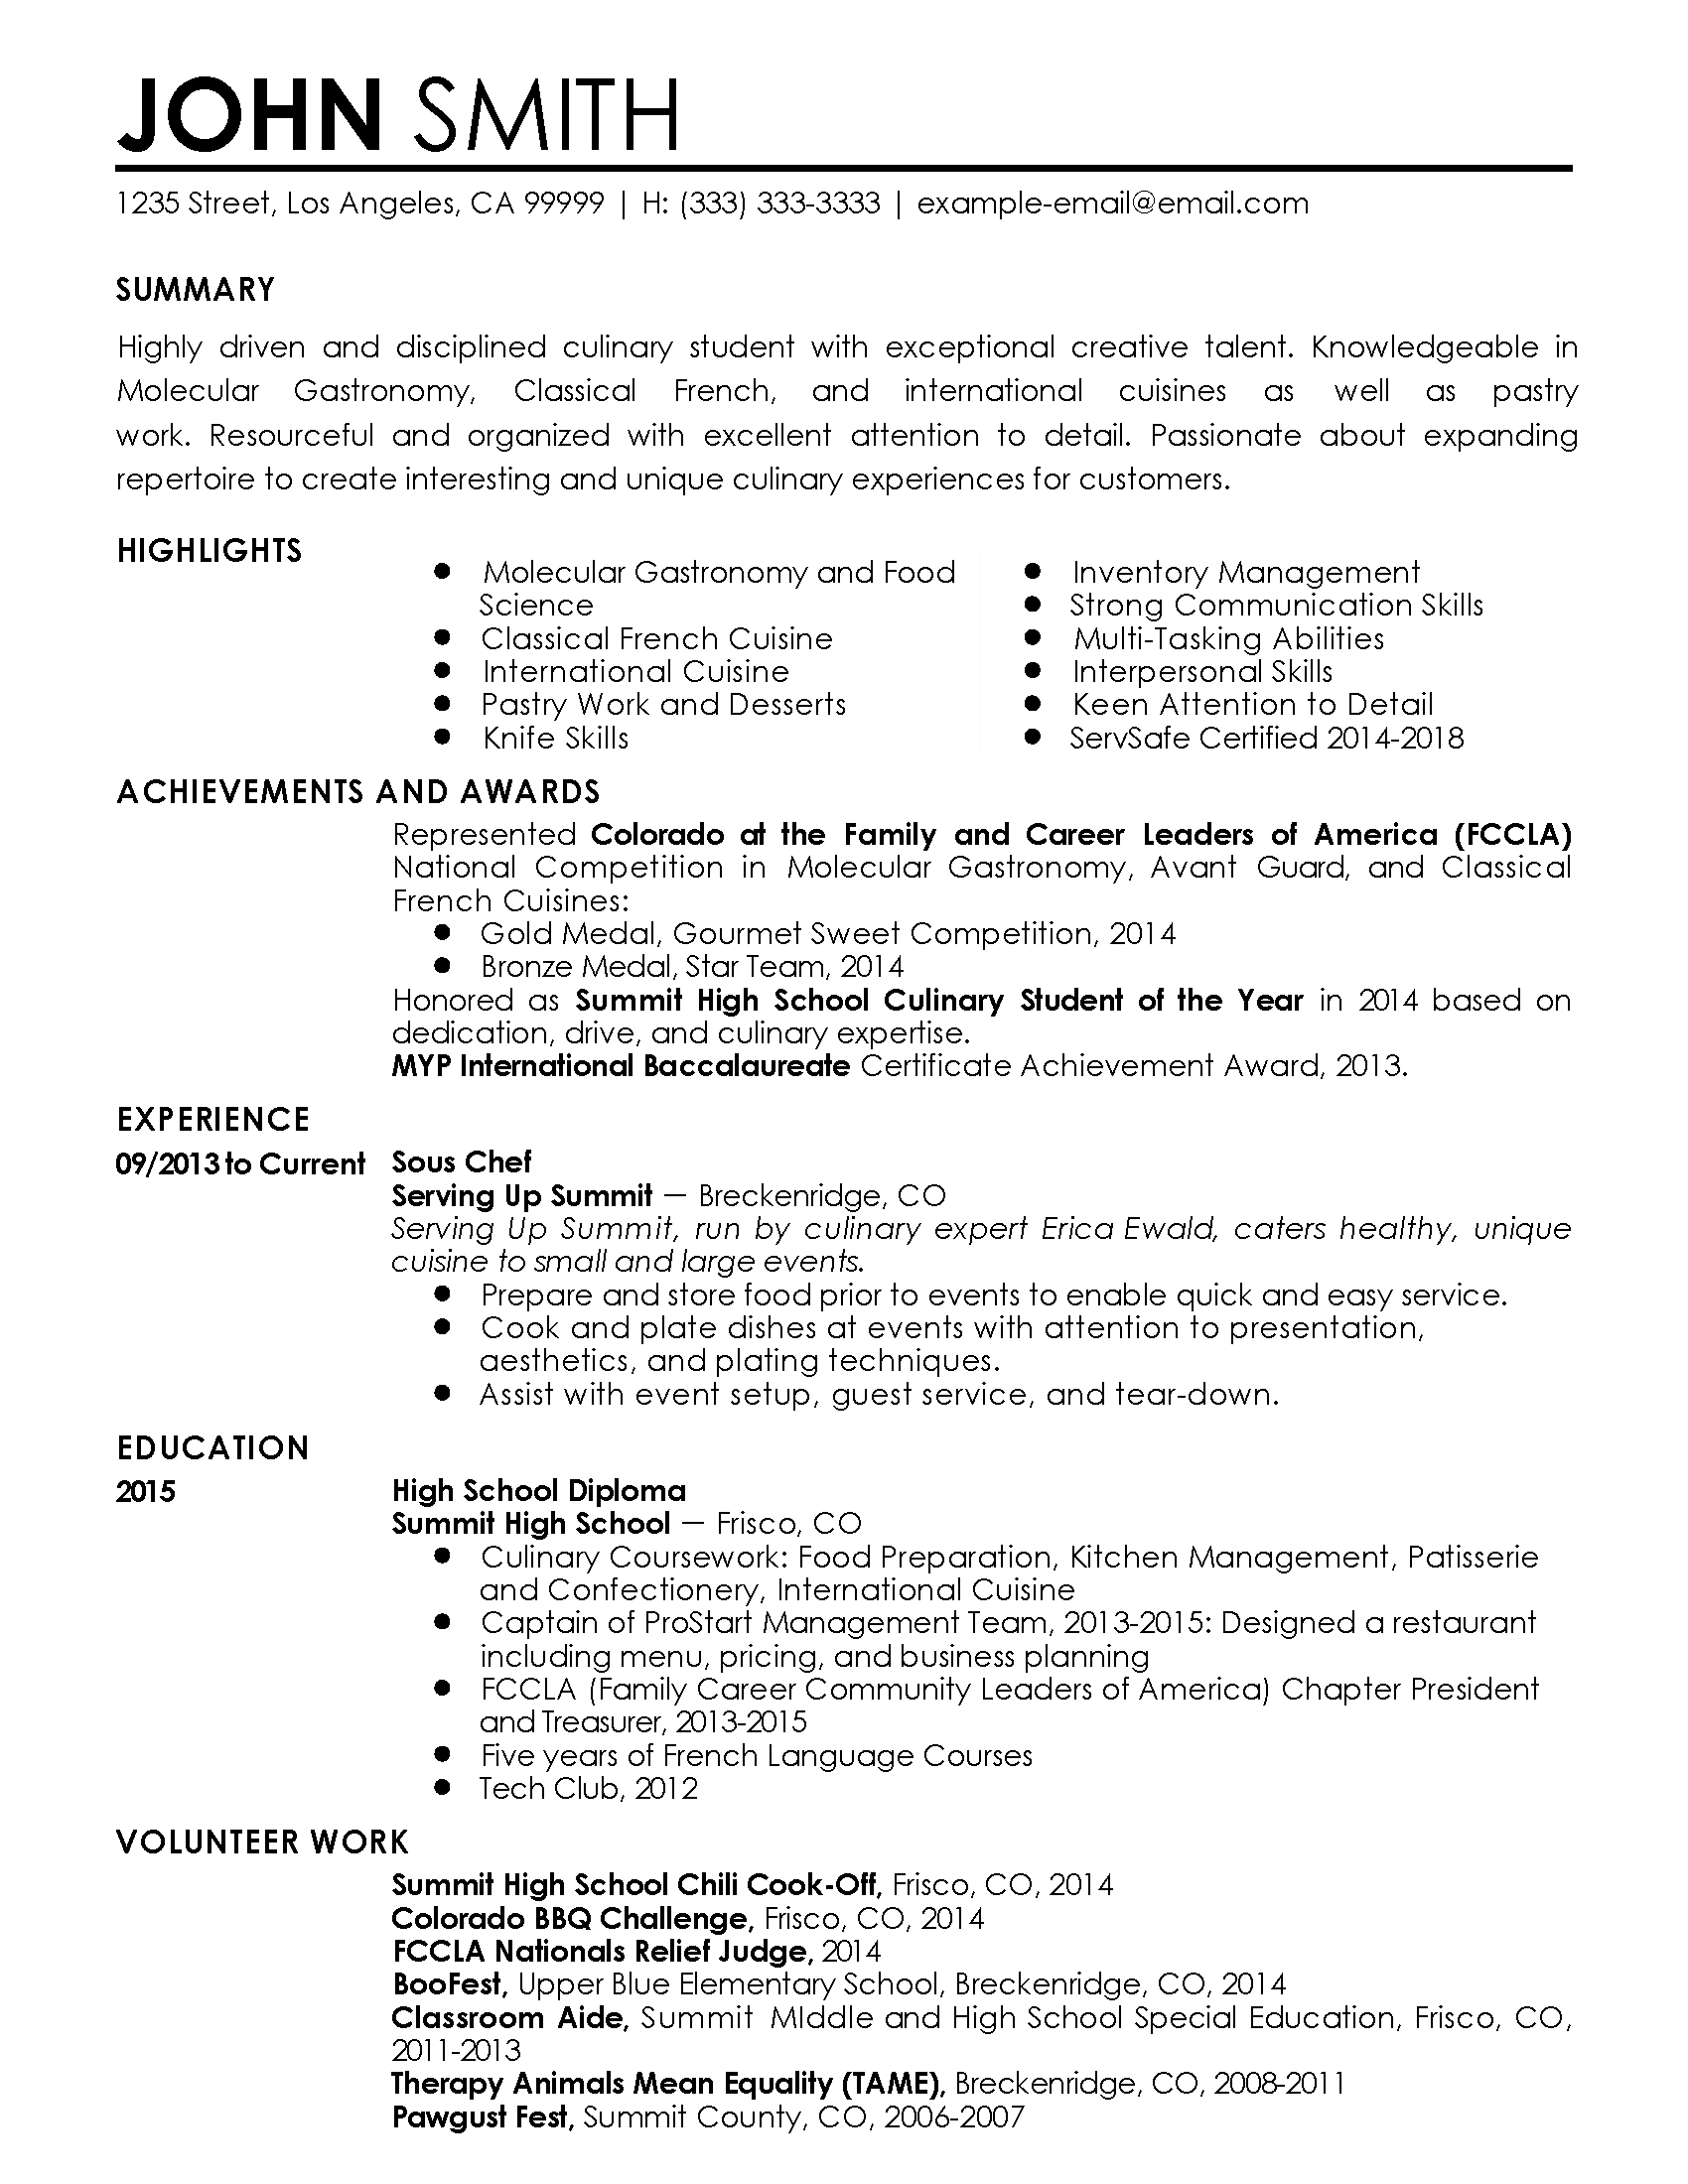 Example Server Resume Unforgettable Server Resume Examples To Stand Out  Myperfectresume .